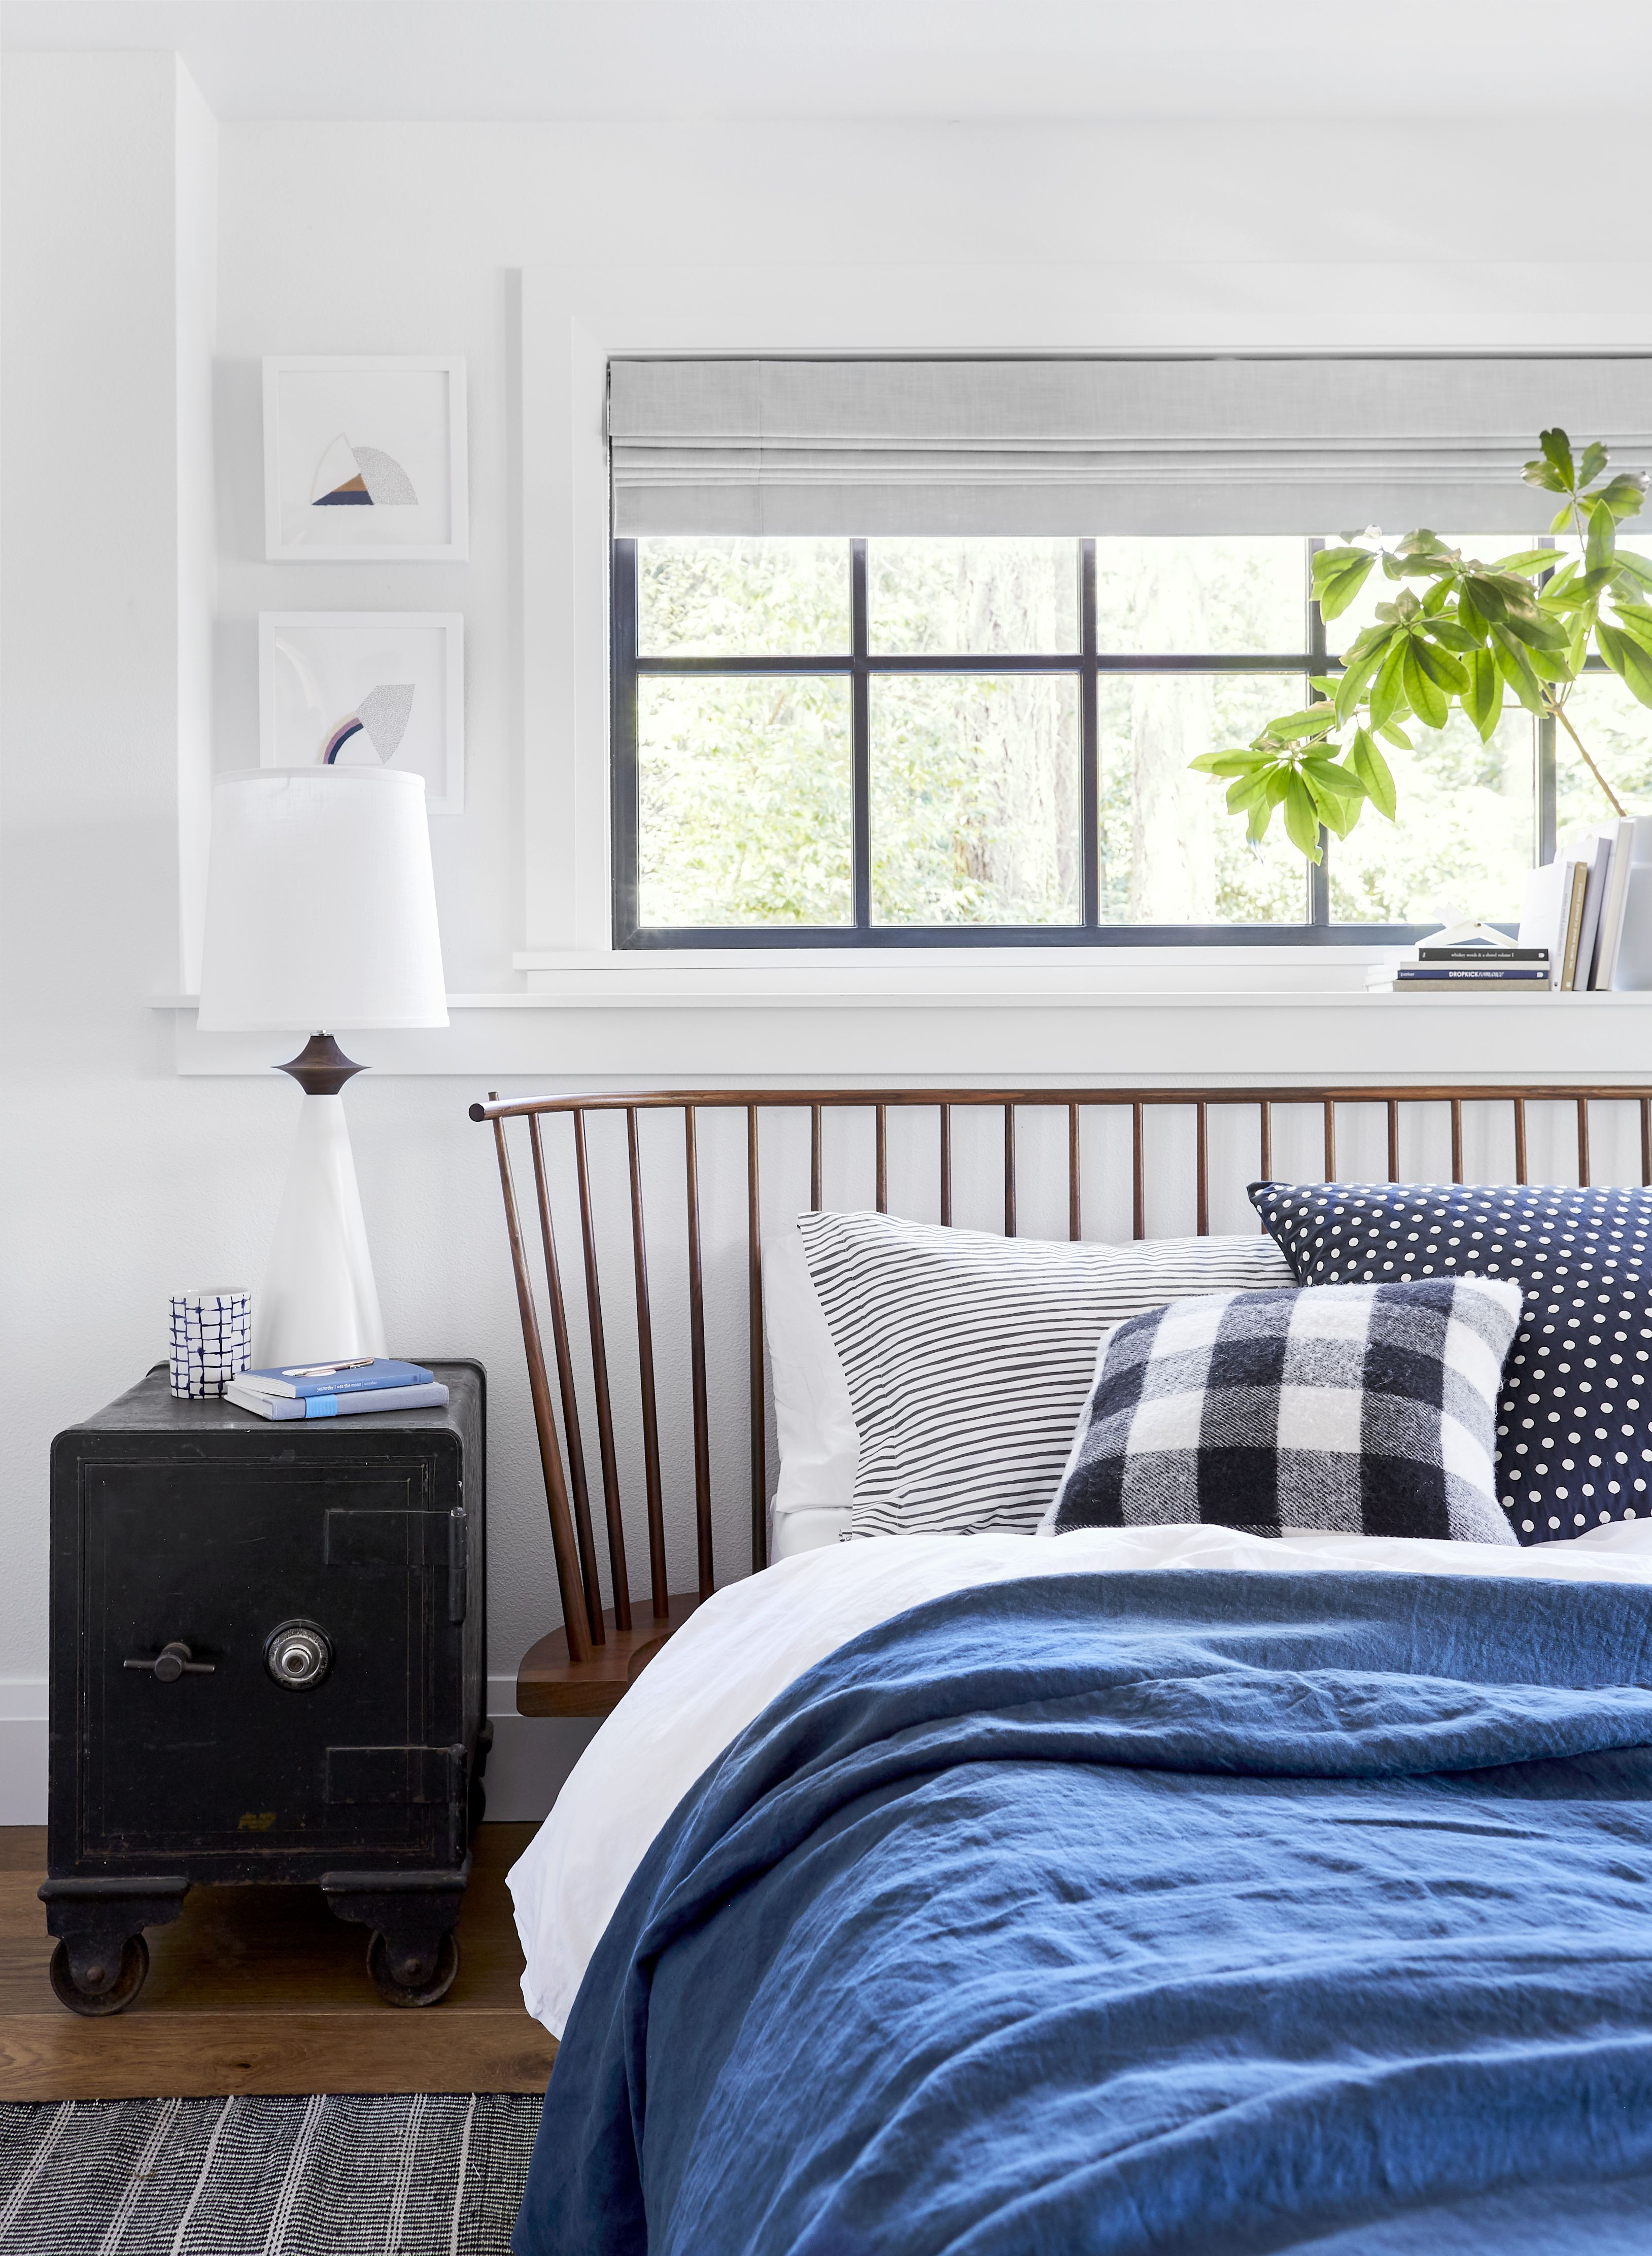 10 IKEA Bedroom Storage Ideas to Clear the Clutter and ...